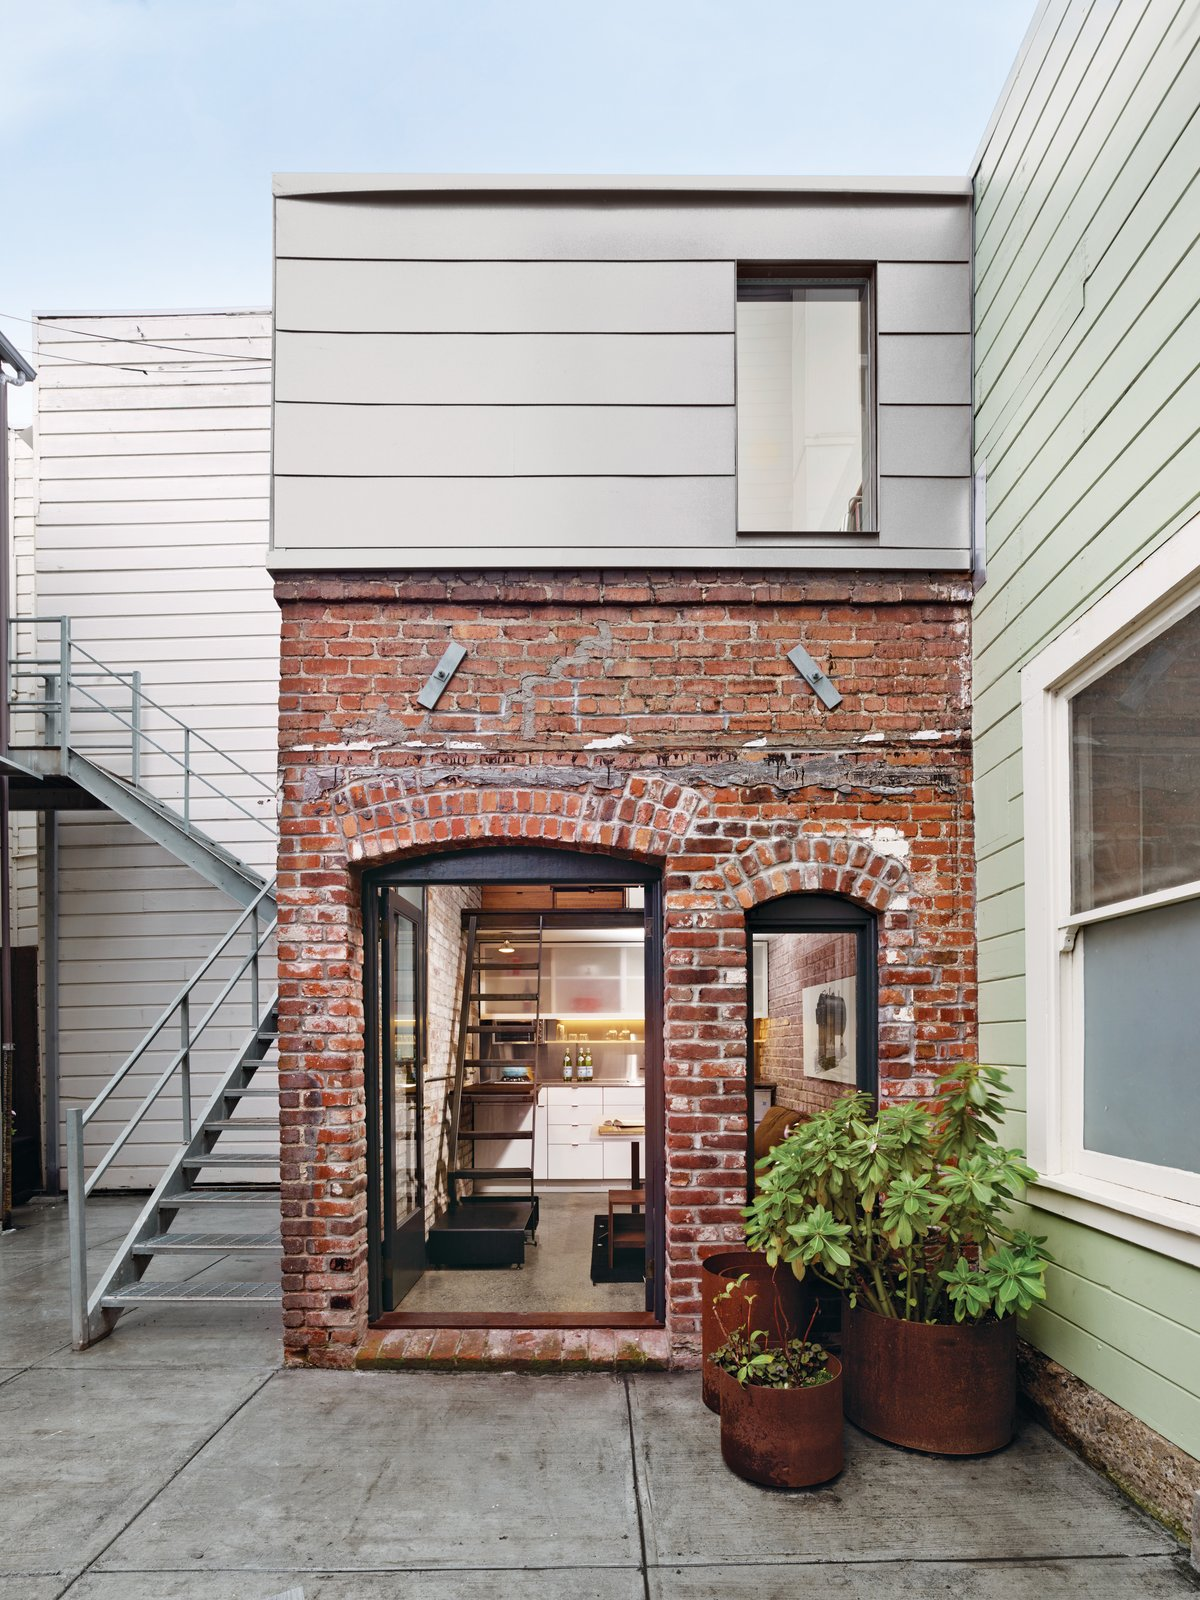 Outdoor #smallspaces #brick #boilerroom #exterior #outside #outdoor #landscape #plants #SanFrancisco #guesthouse #stairs #ladder #ChristiAzevedo    Photo 8 of 10 in 10 Tiny Houses We Love